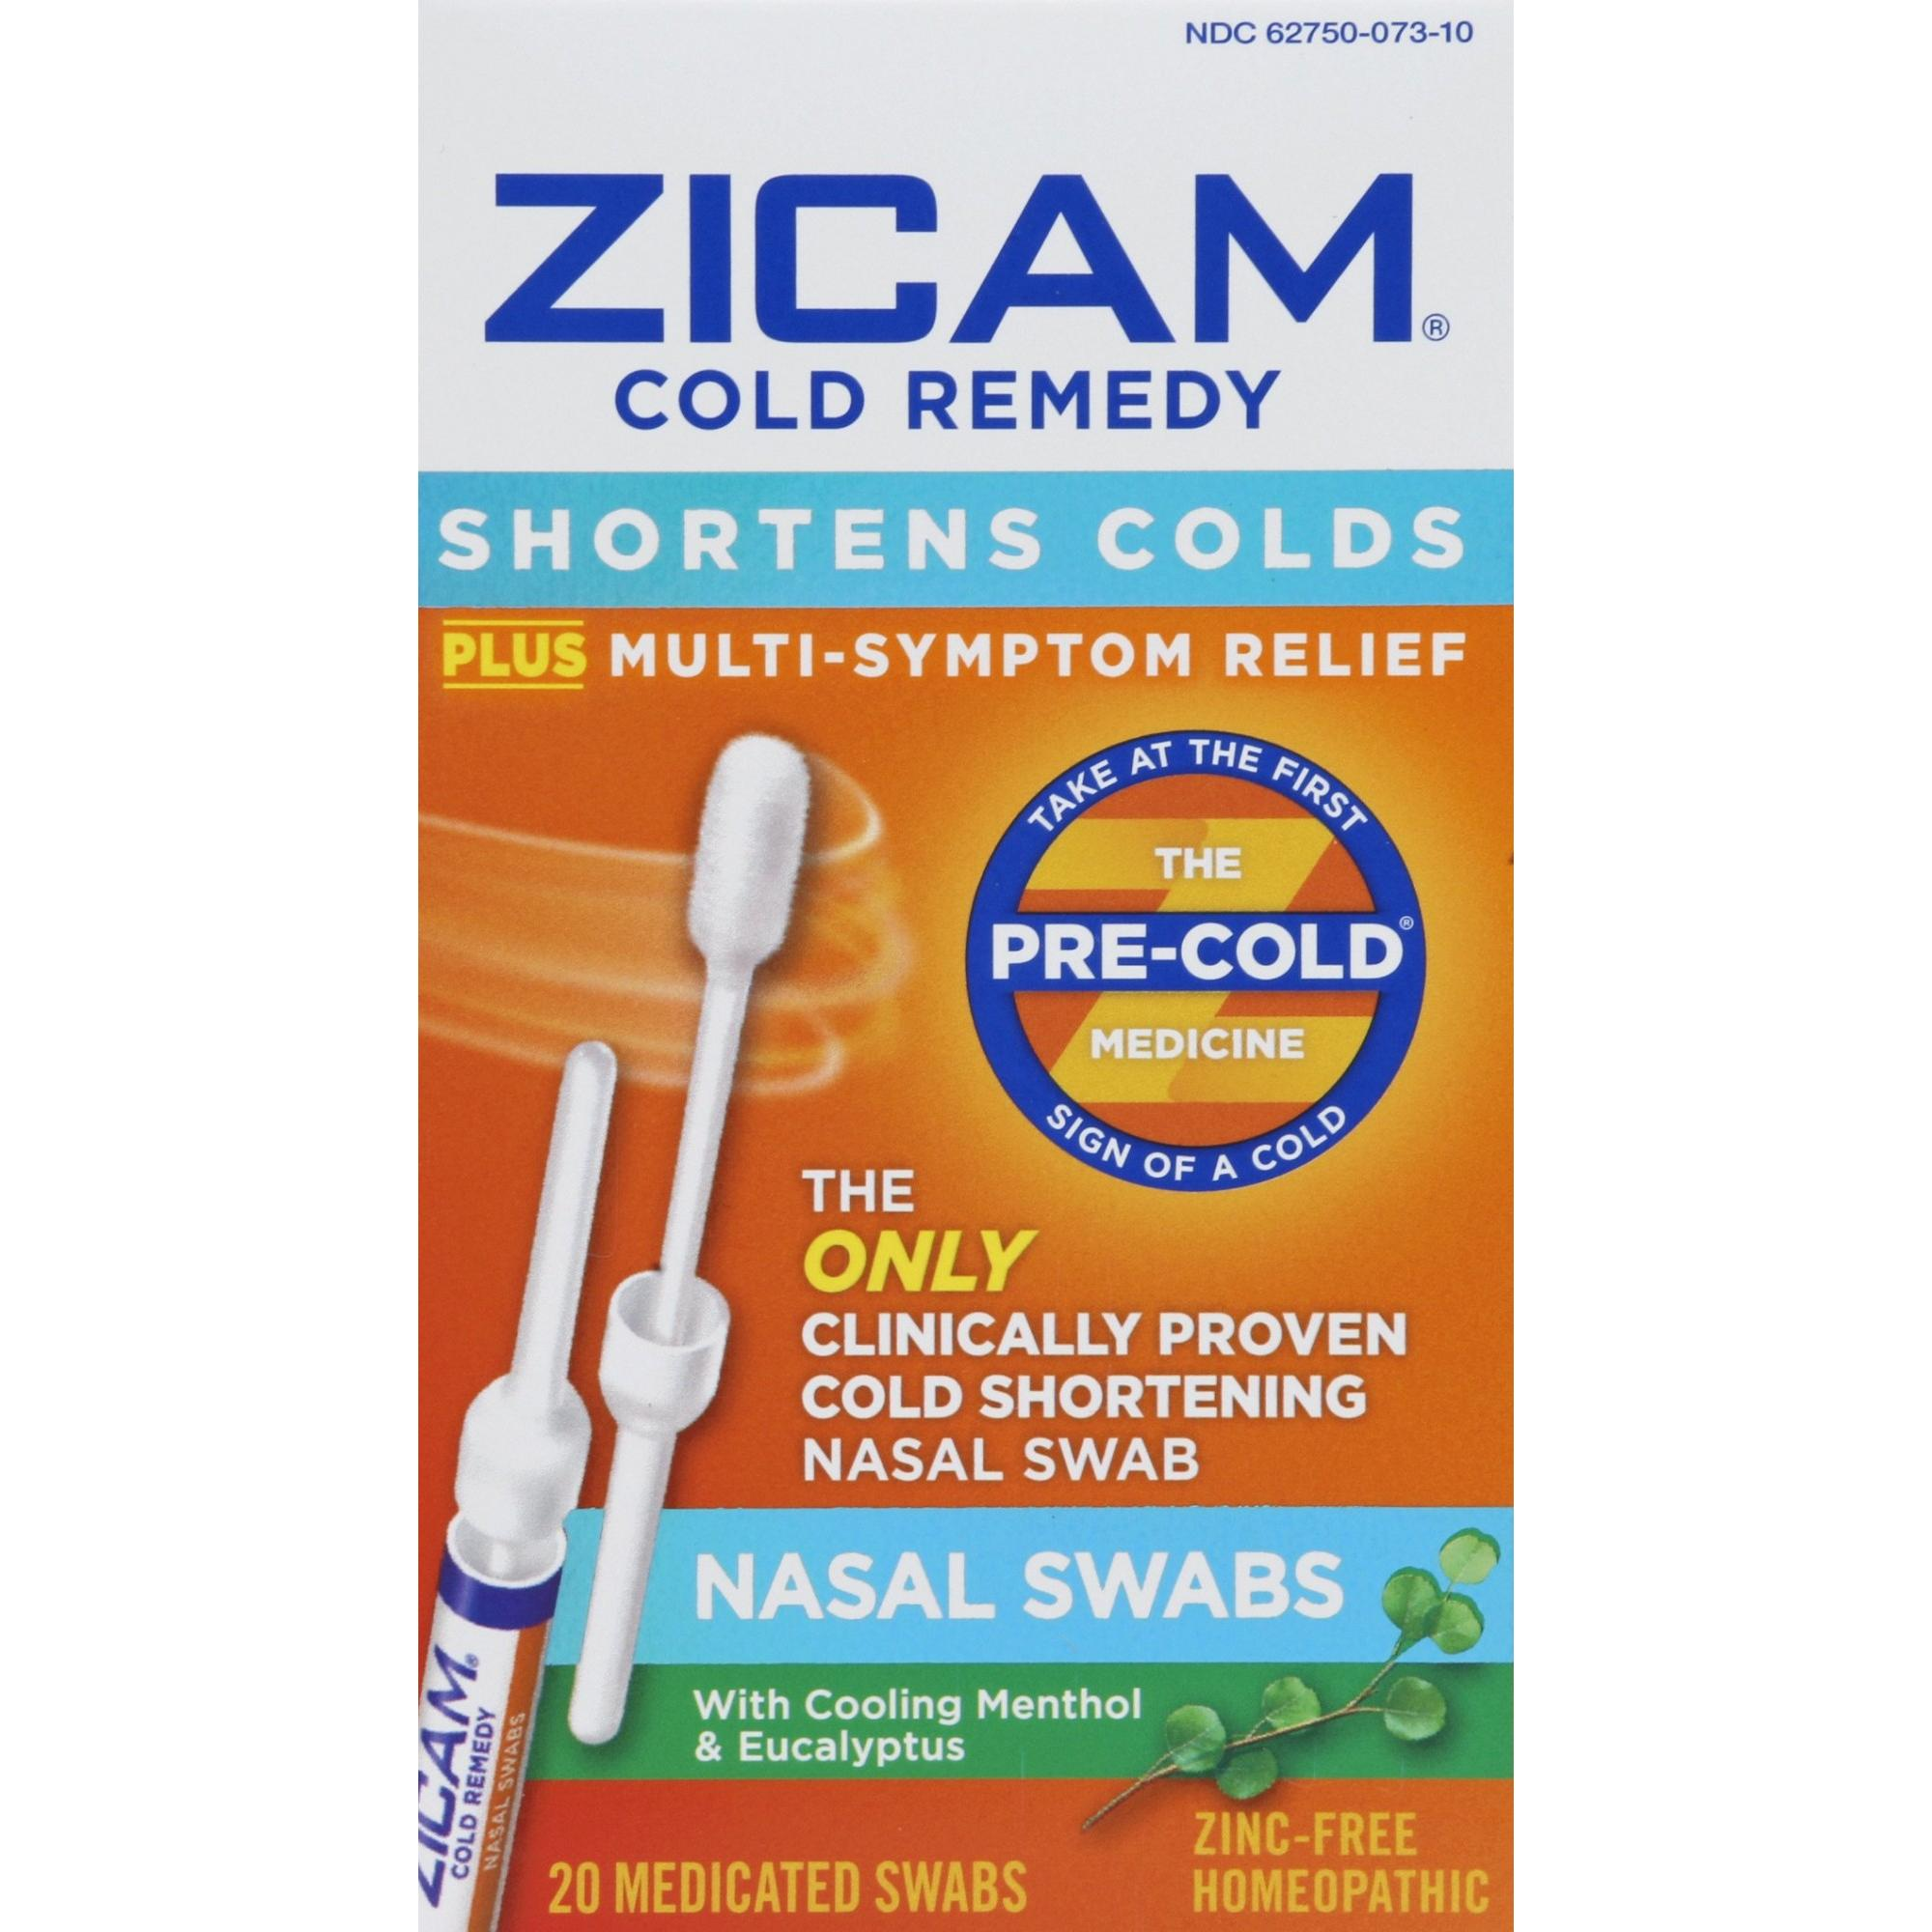 Zicam Cold Remedy Nasal Swabs, 20 Swabs